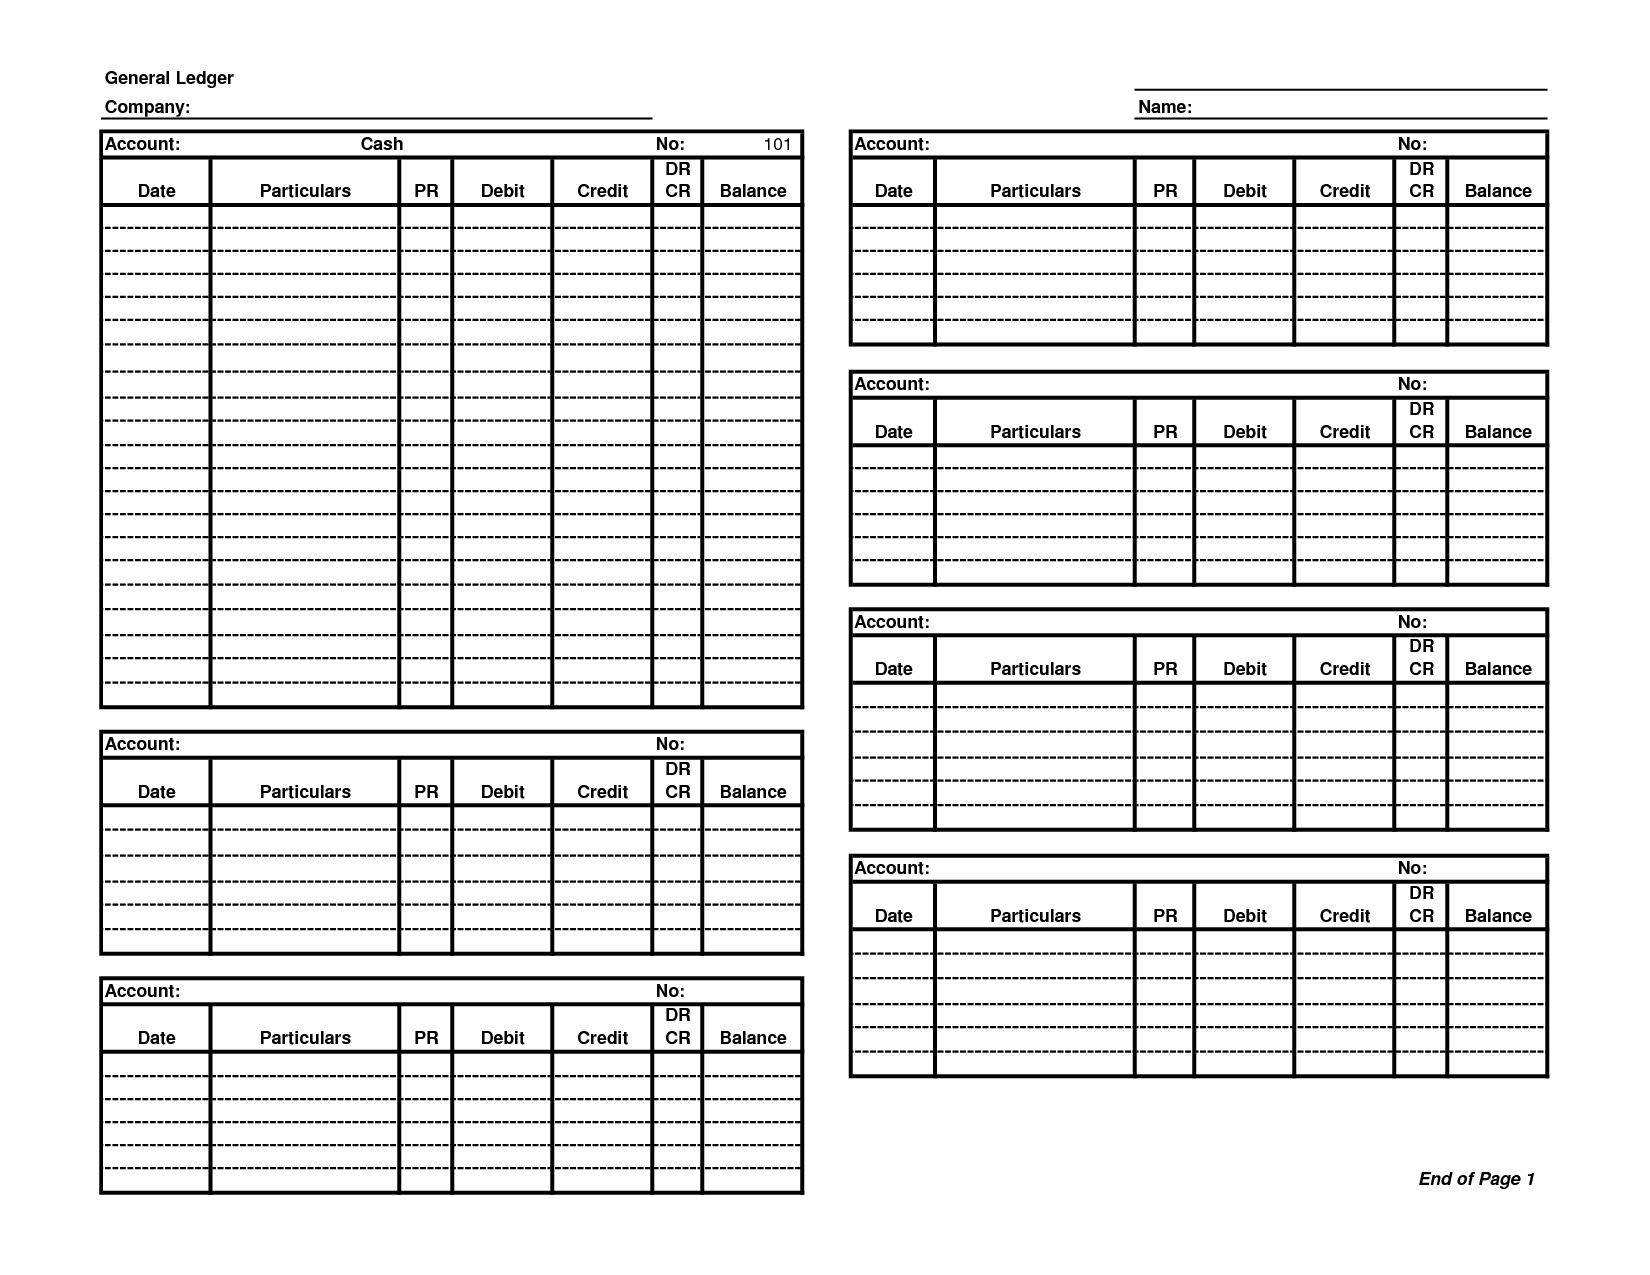 General Ledger Template Printable